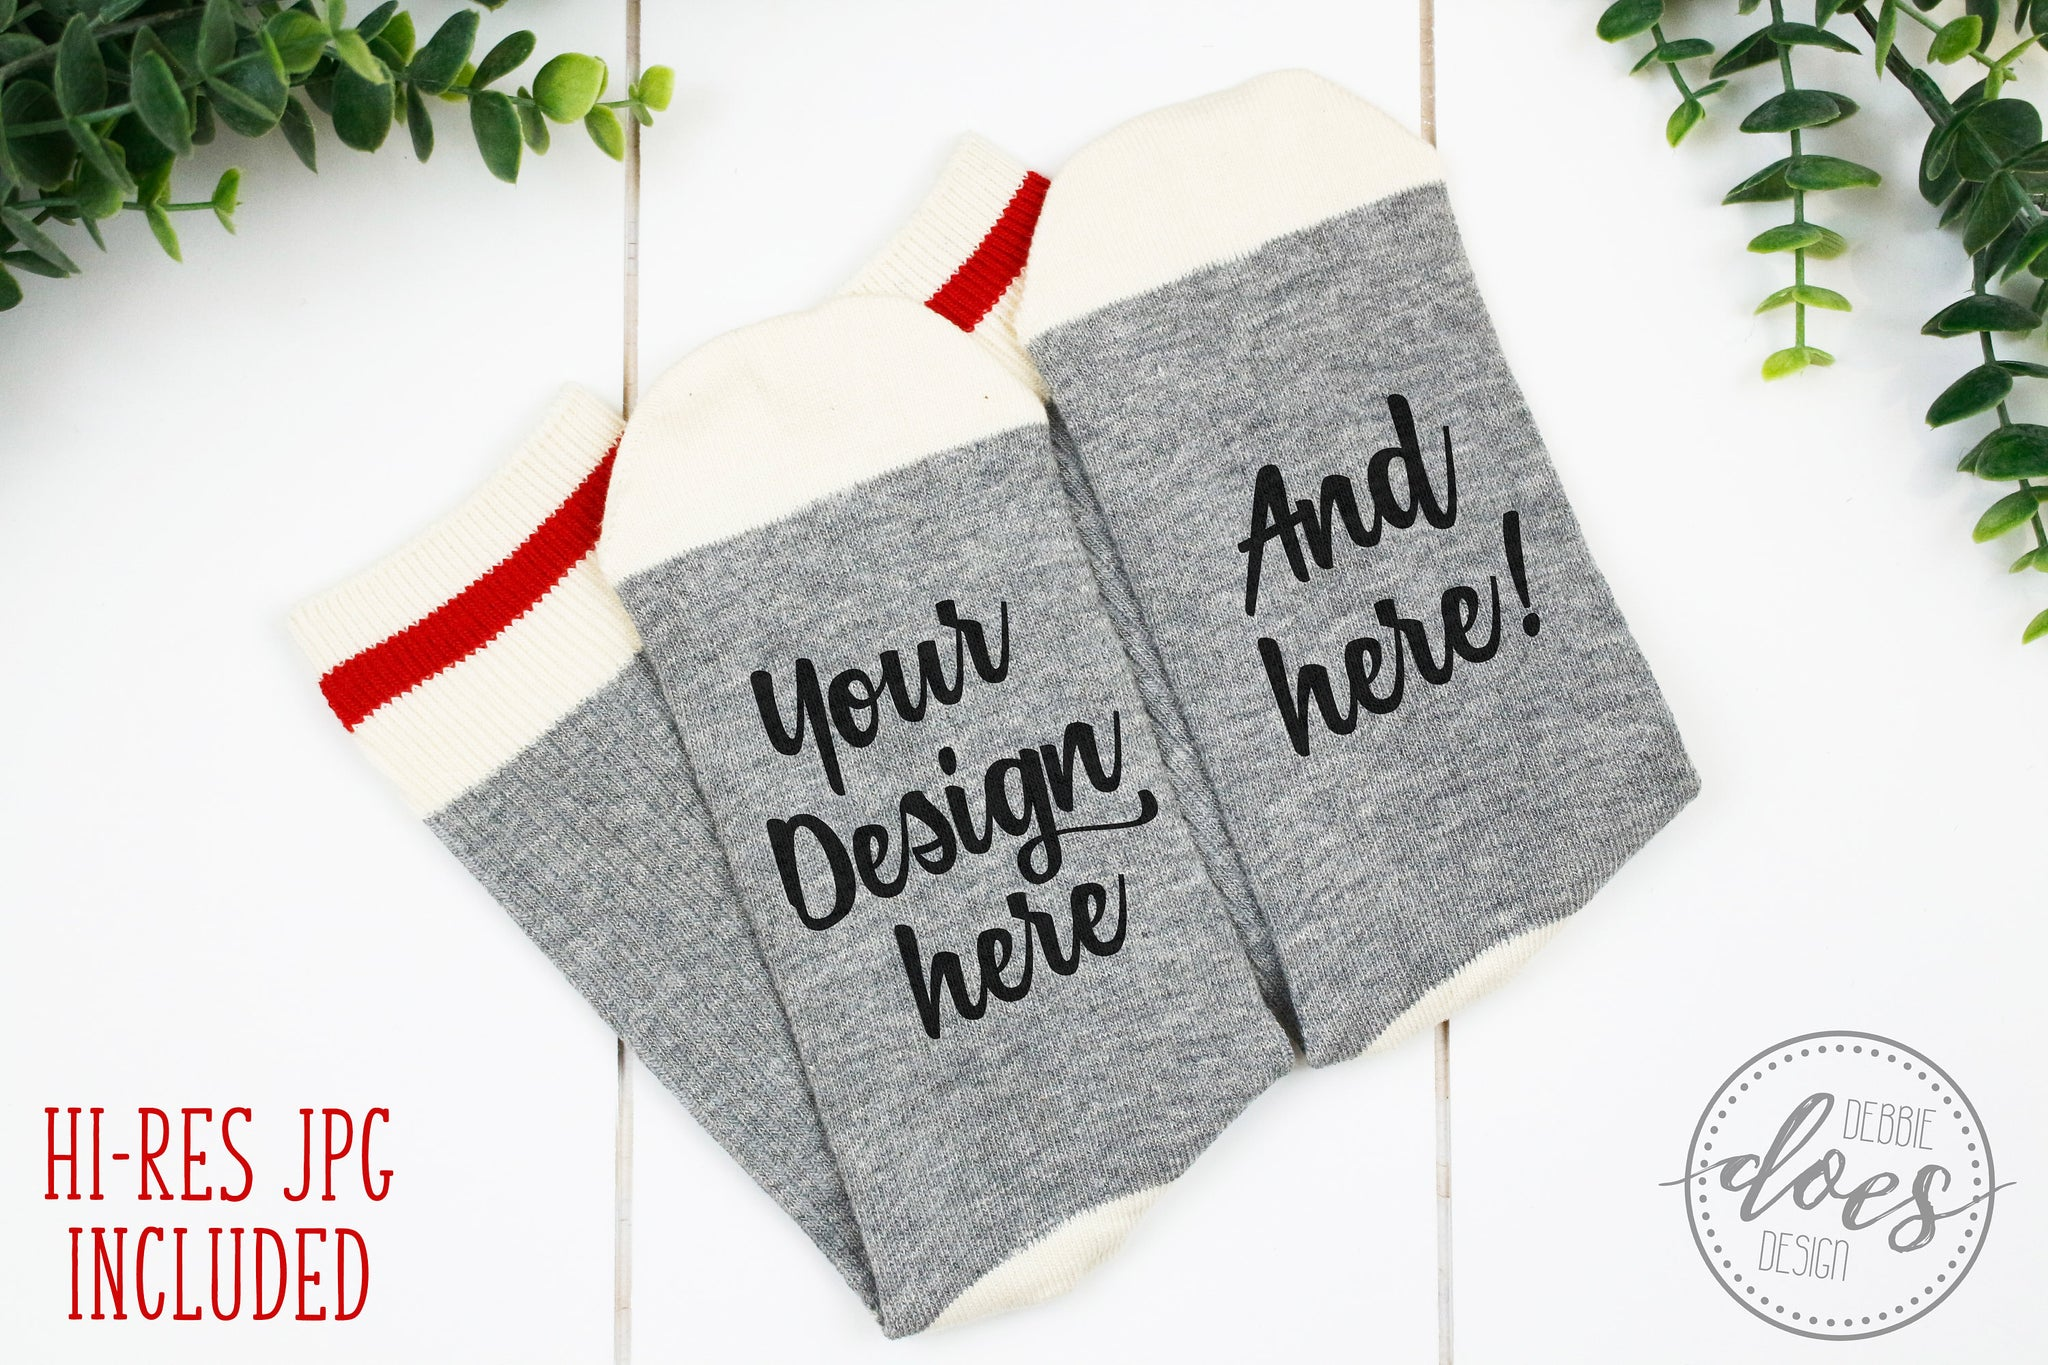 Grey Talking Socks Mockup | Grey Wool Socks Mock-Up | Blank Mock Up Photo Download